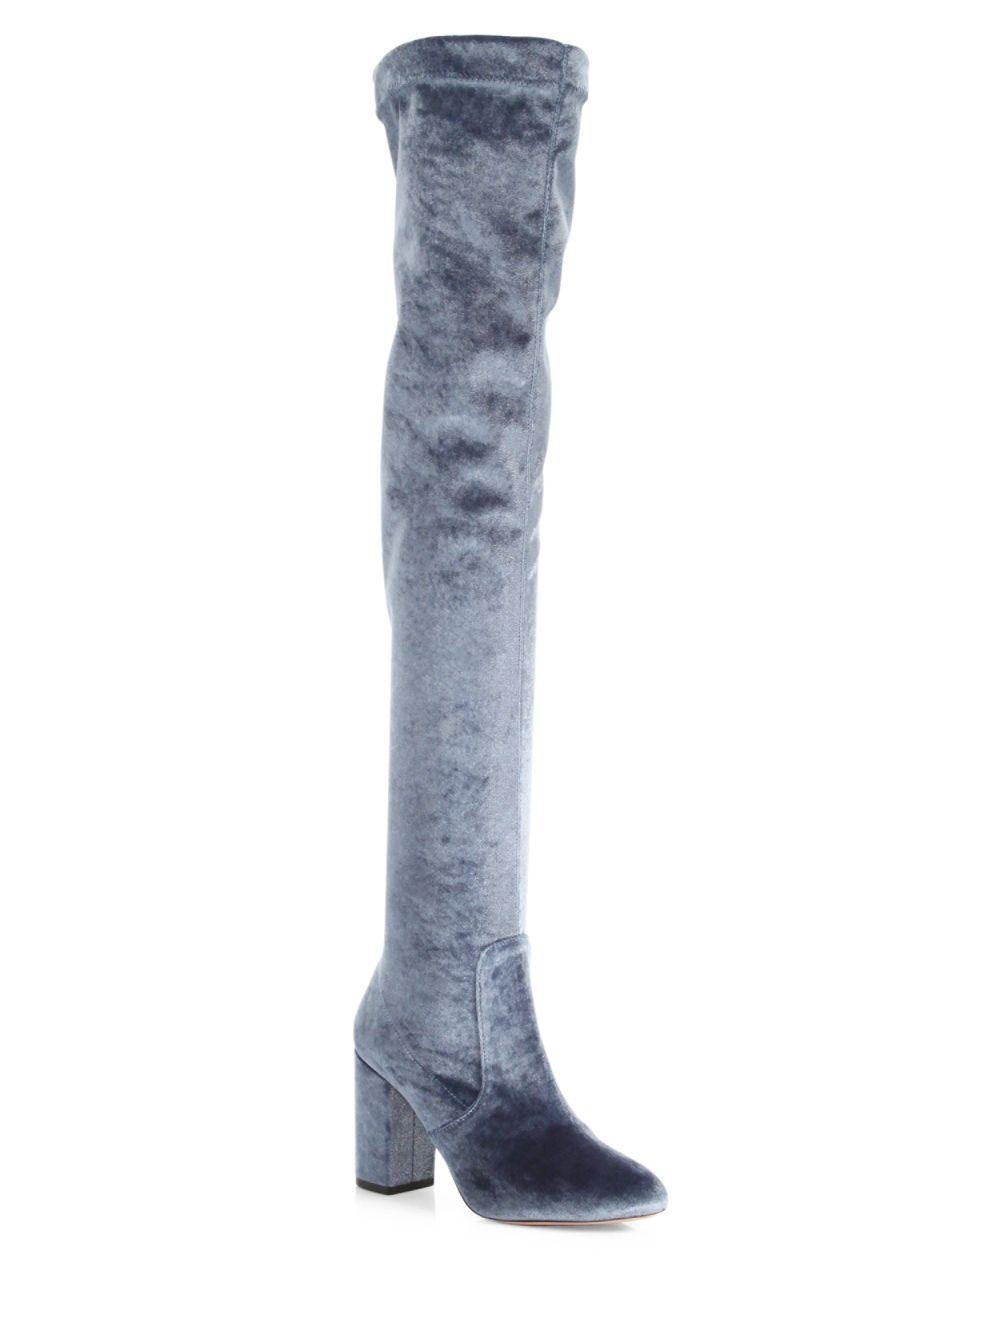 9428202a22a2c Lyst - Aquazzura So Me Velvet Over-the-knee Boots in Gray - Save 30%